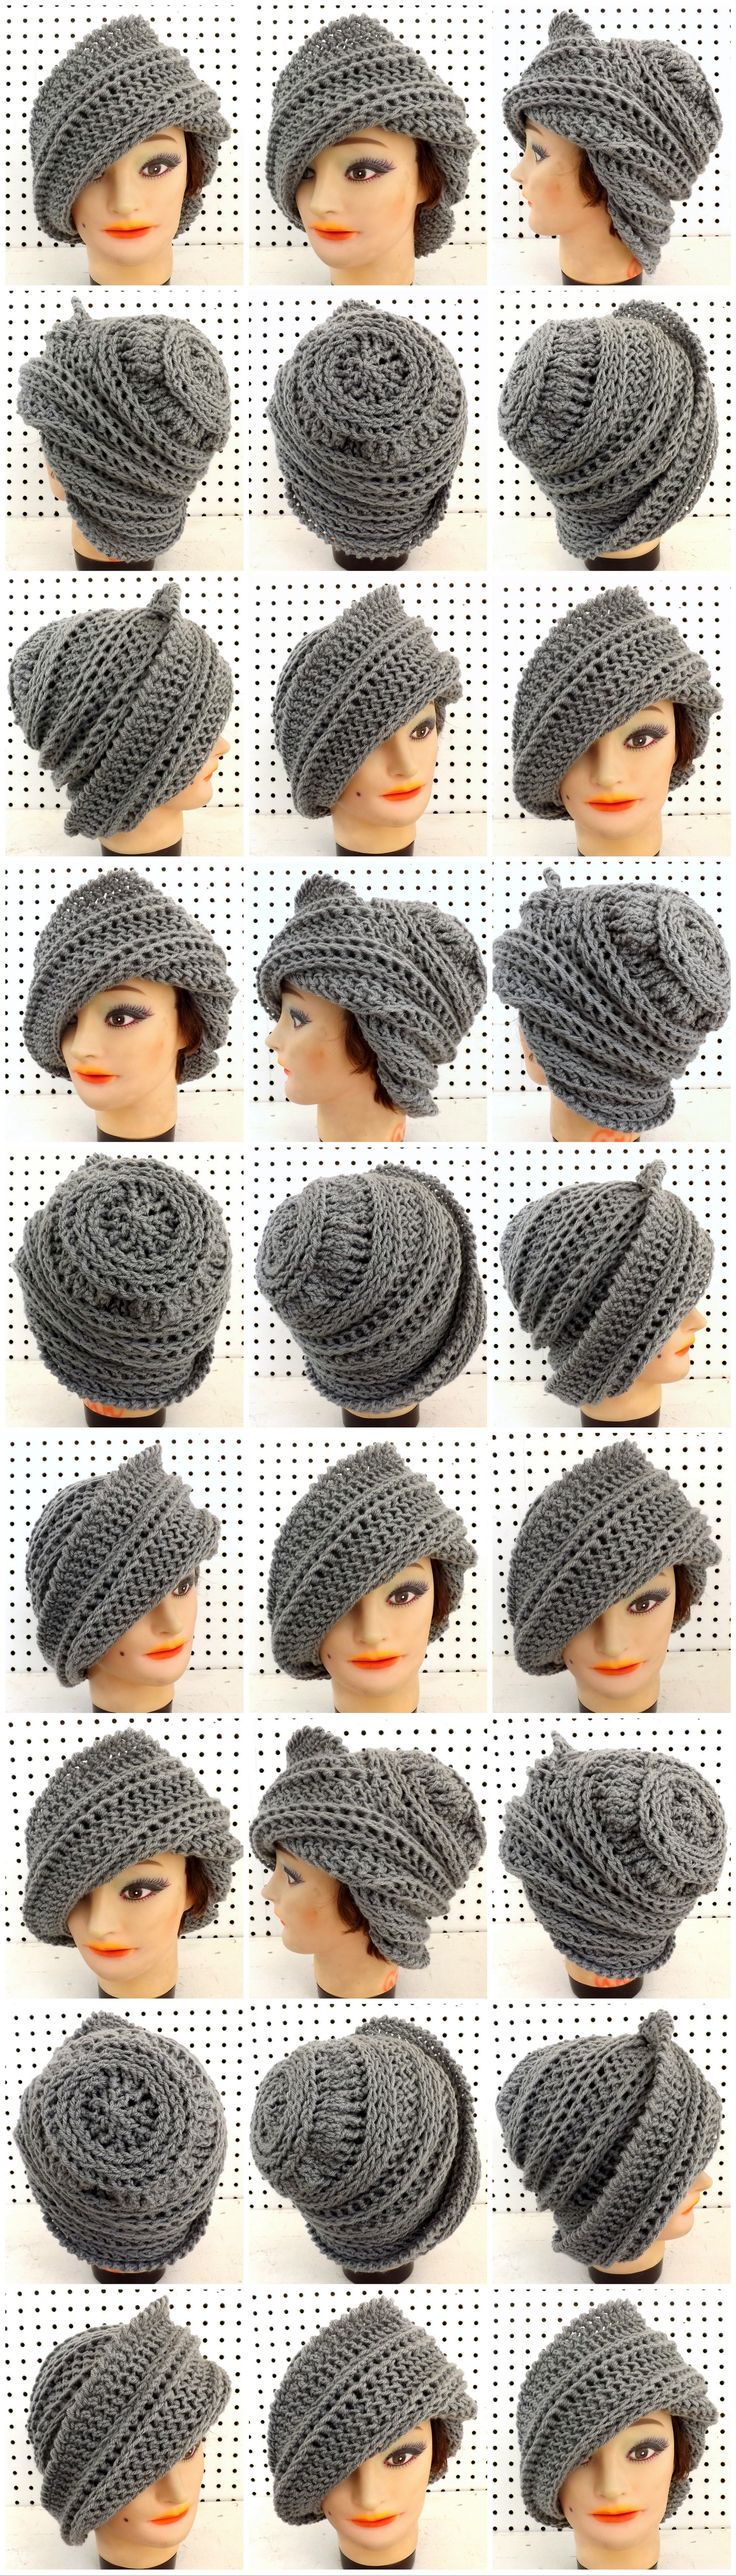 JUDY Crochet Wide Brim Beanie Hat in Dark Gray